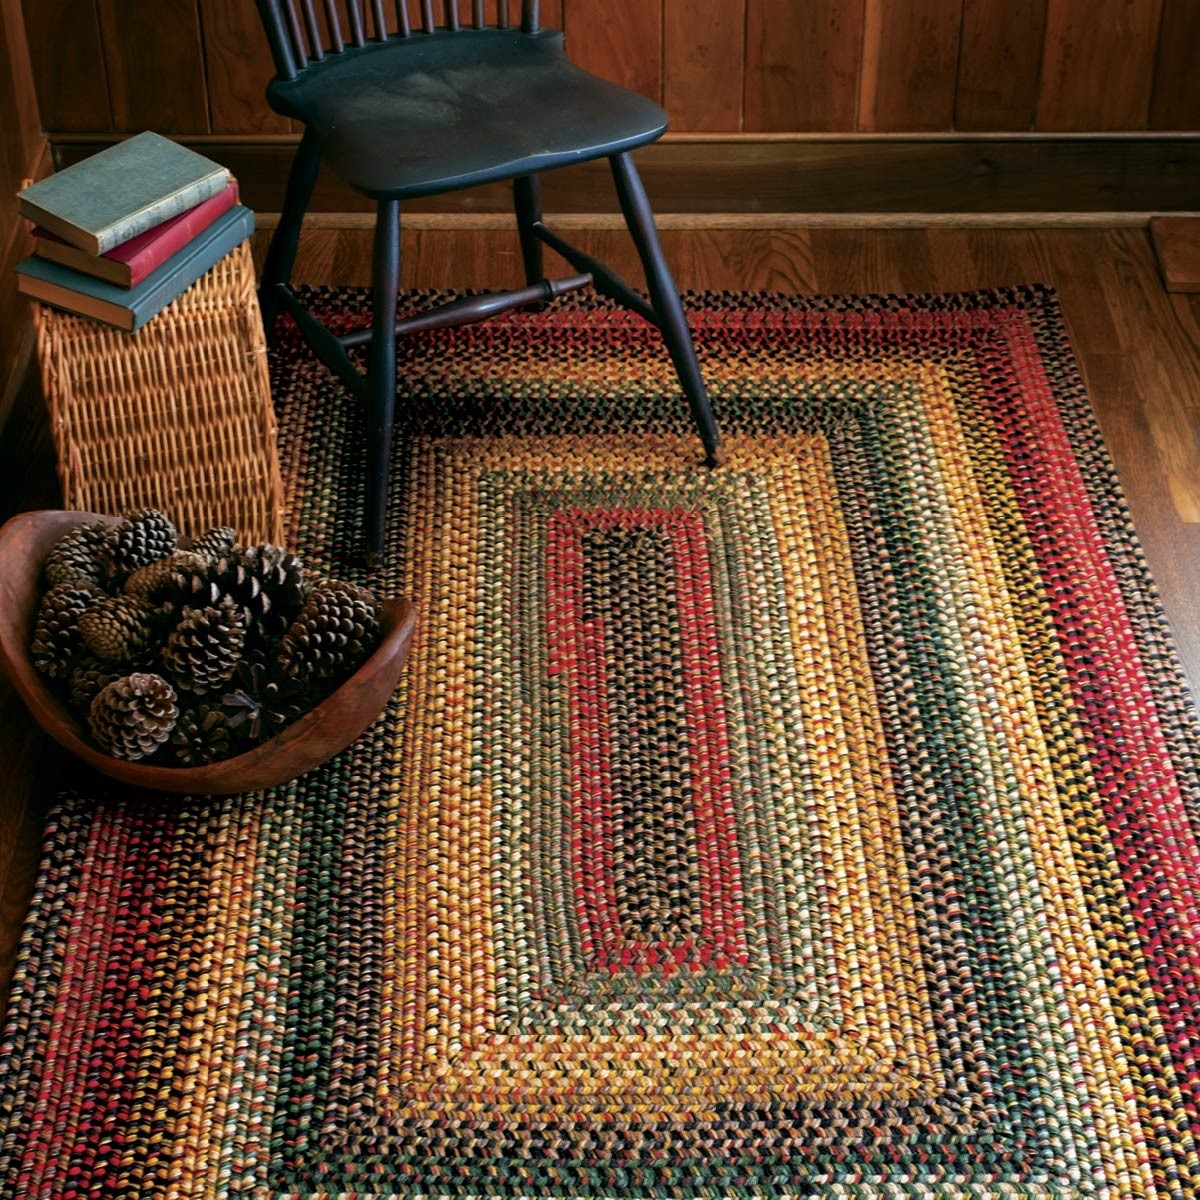 Buy Budapest Multi Color Wool Braid Rugs Online - Homespice